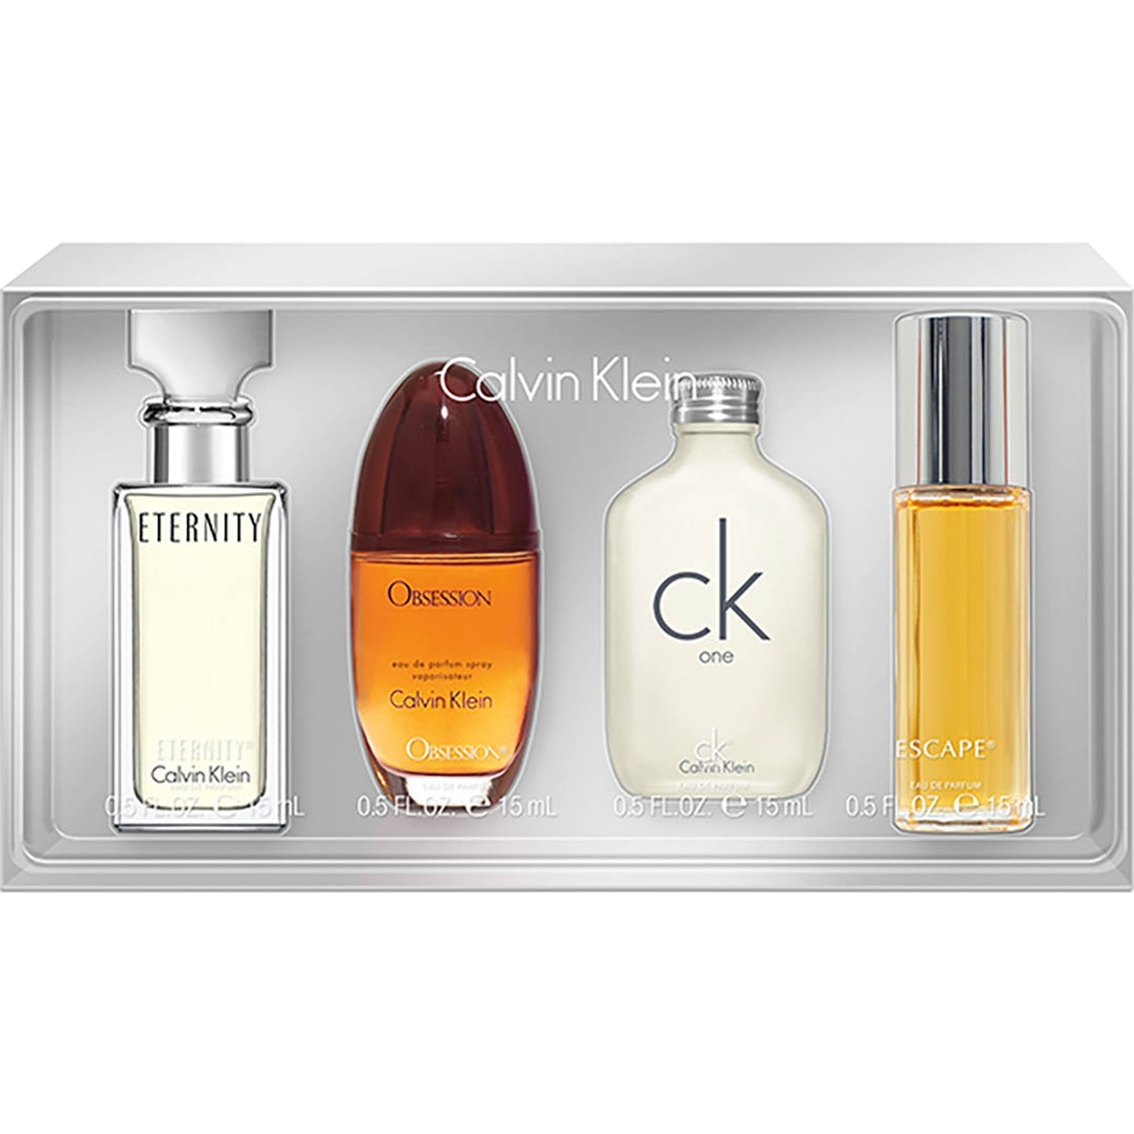 Calvin Klein Omni Gift Set For Women | Gifts Sets For Her | Gifts ...